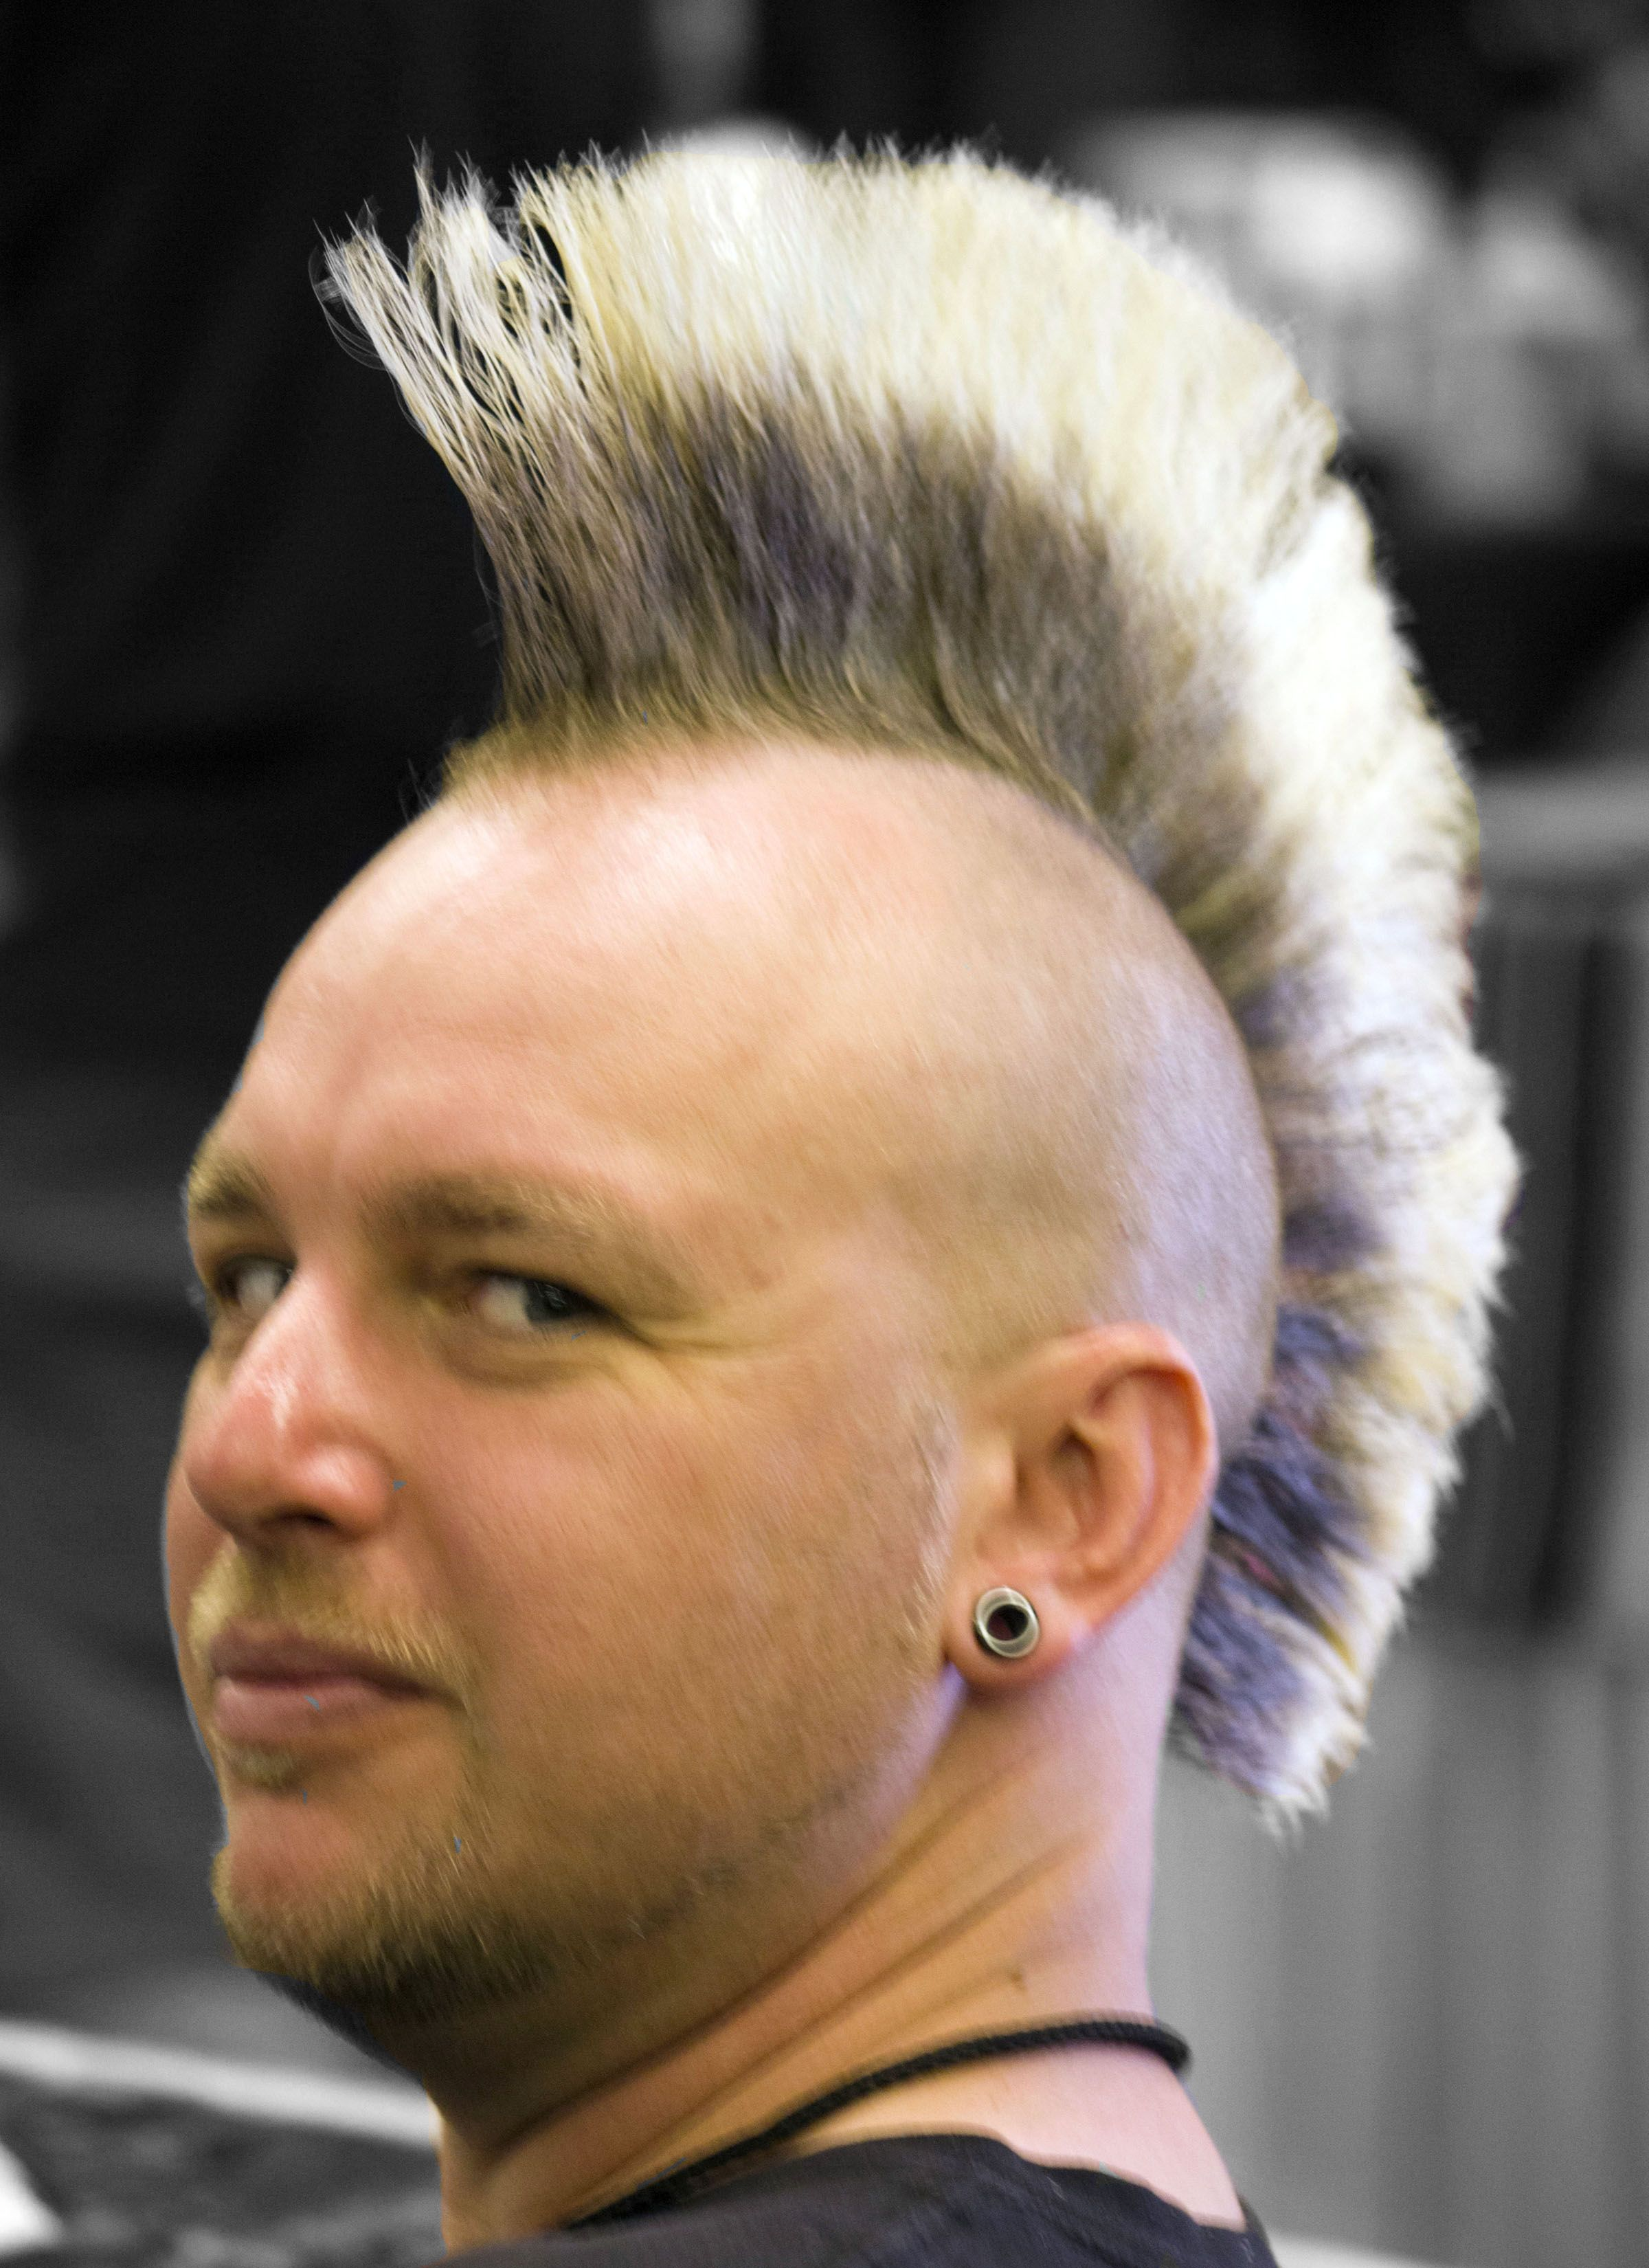 Mohawk Pic Mr T Needs Inspiration Every Now And Then A Good